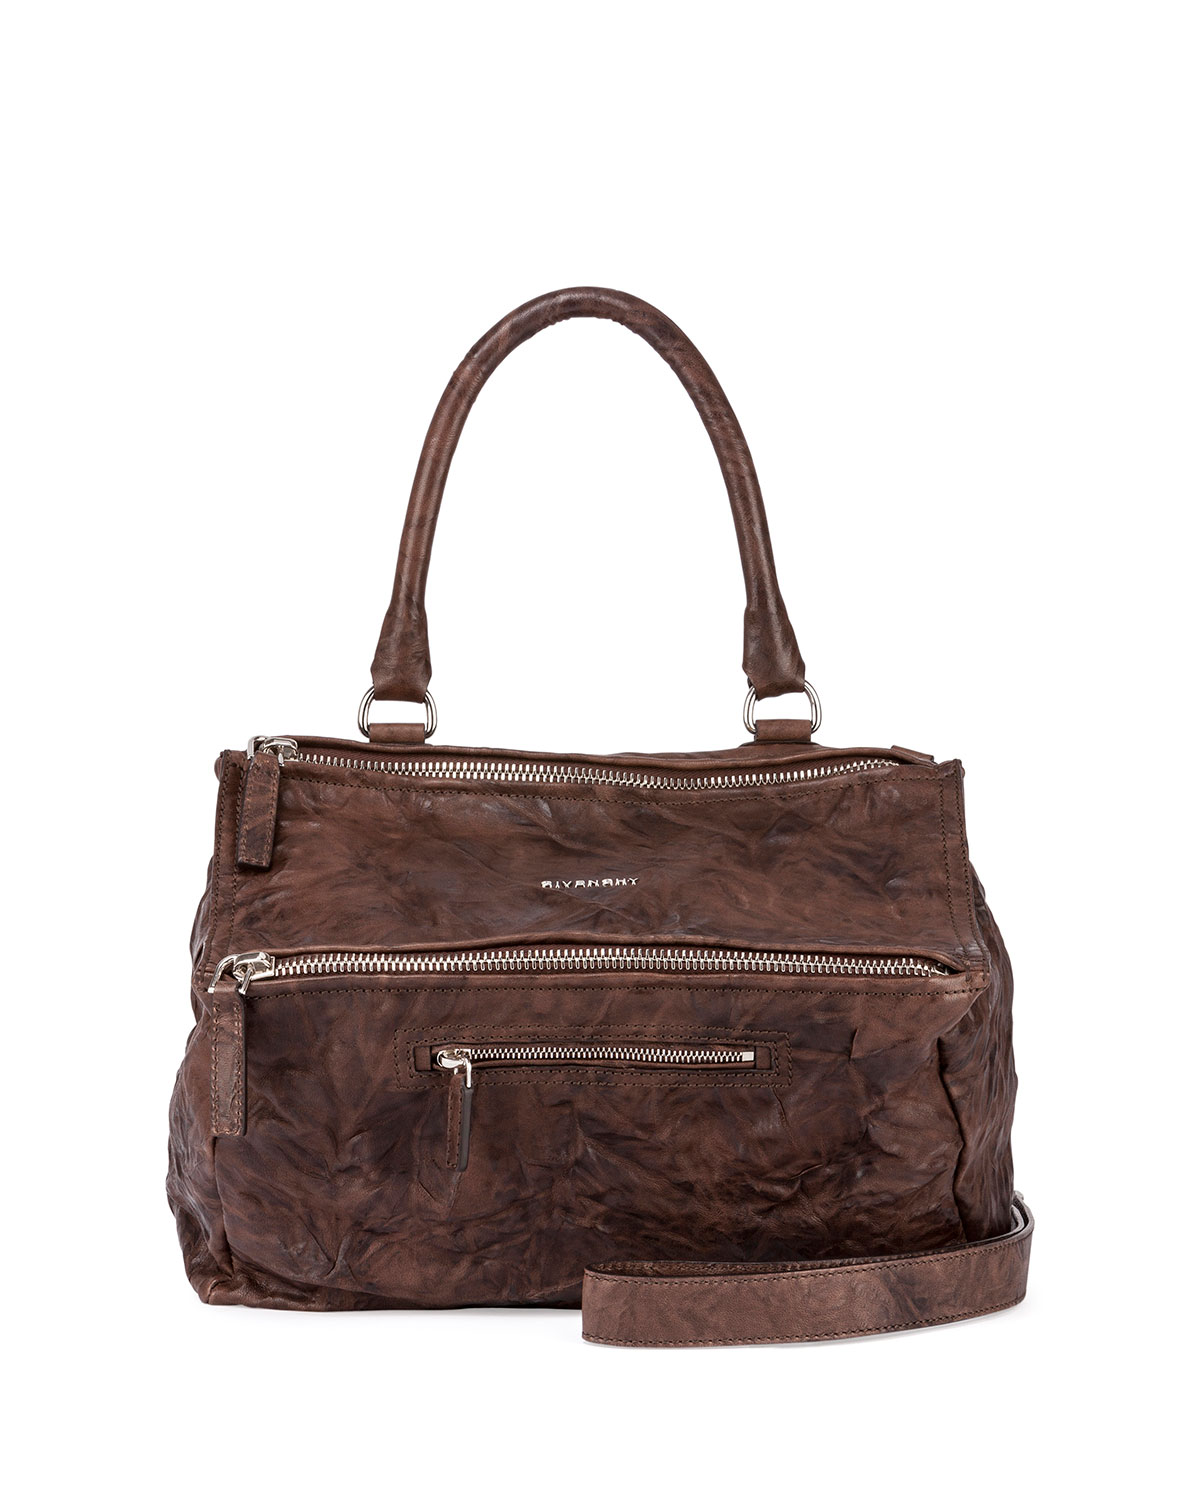 5268b31a7e Givenchy Pandora Medium Leather Satchel Bag